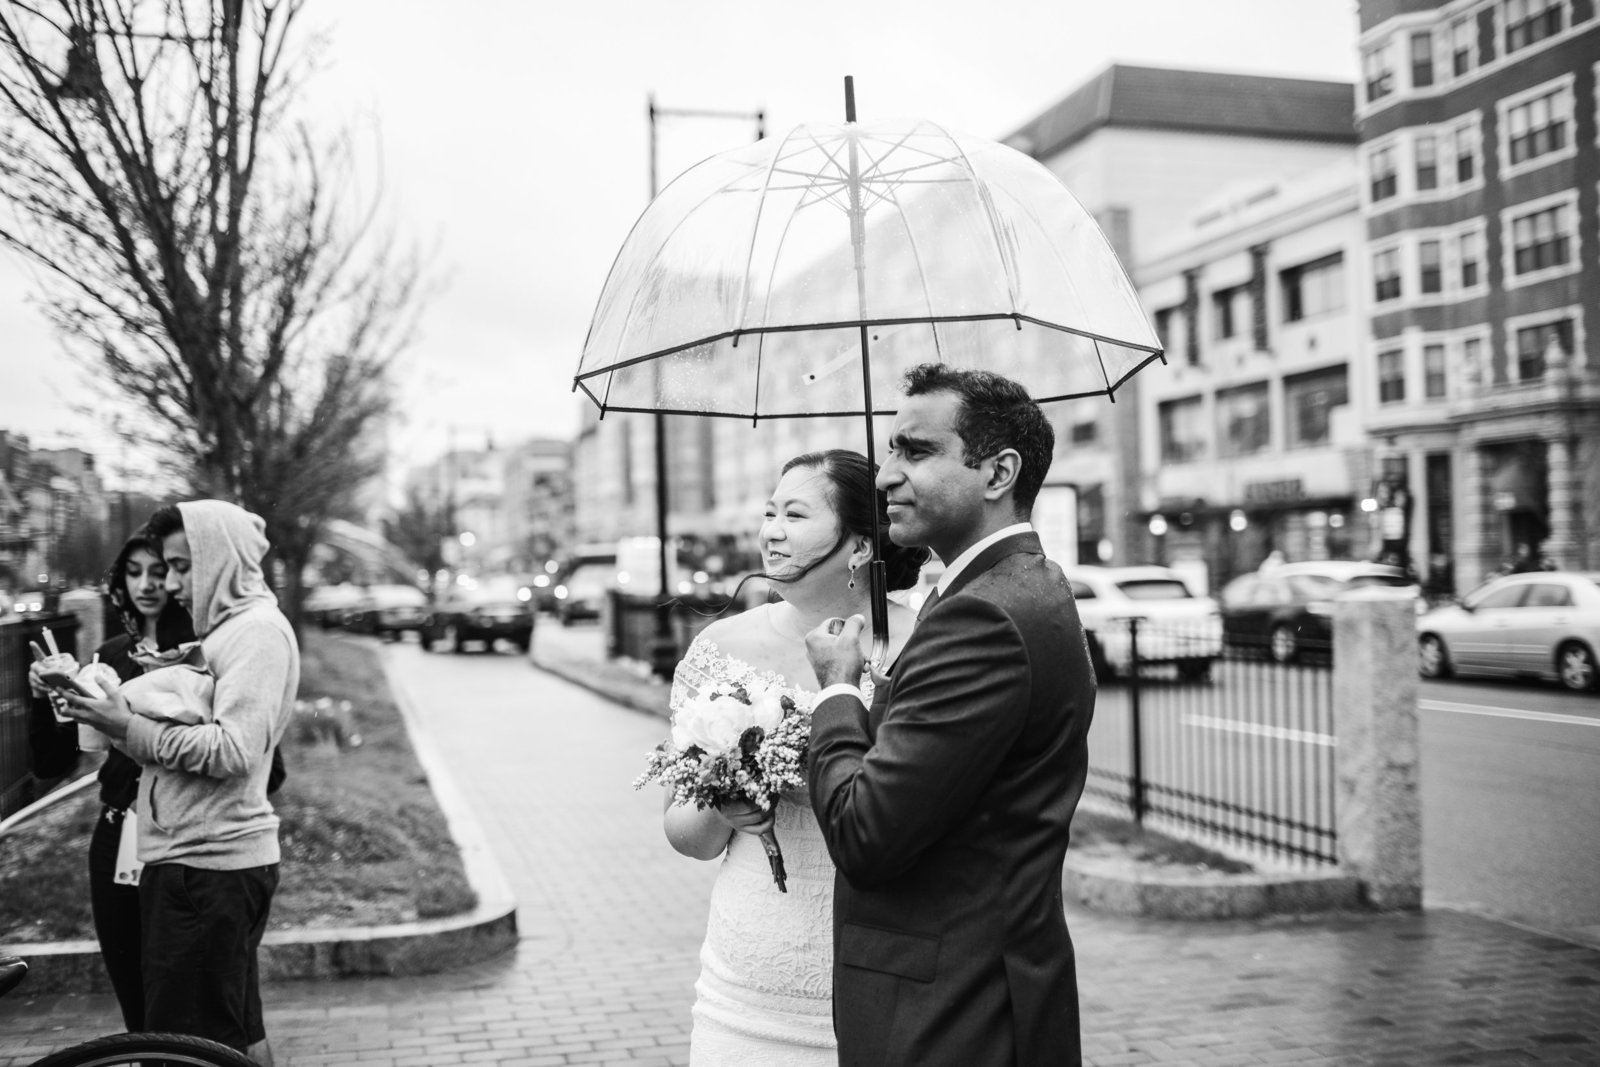 bride and groom share an umbrella on the streets of boston